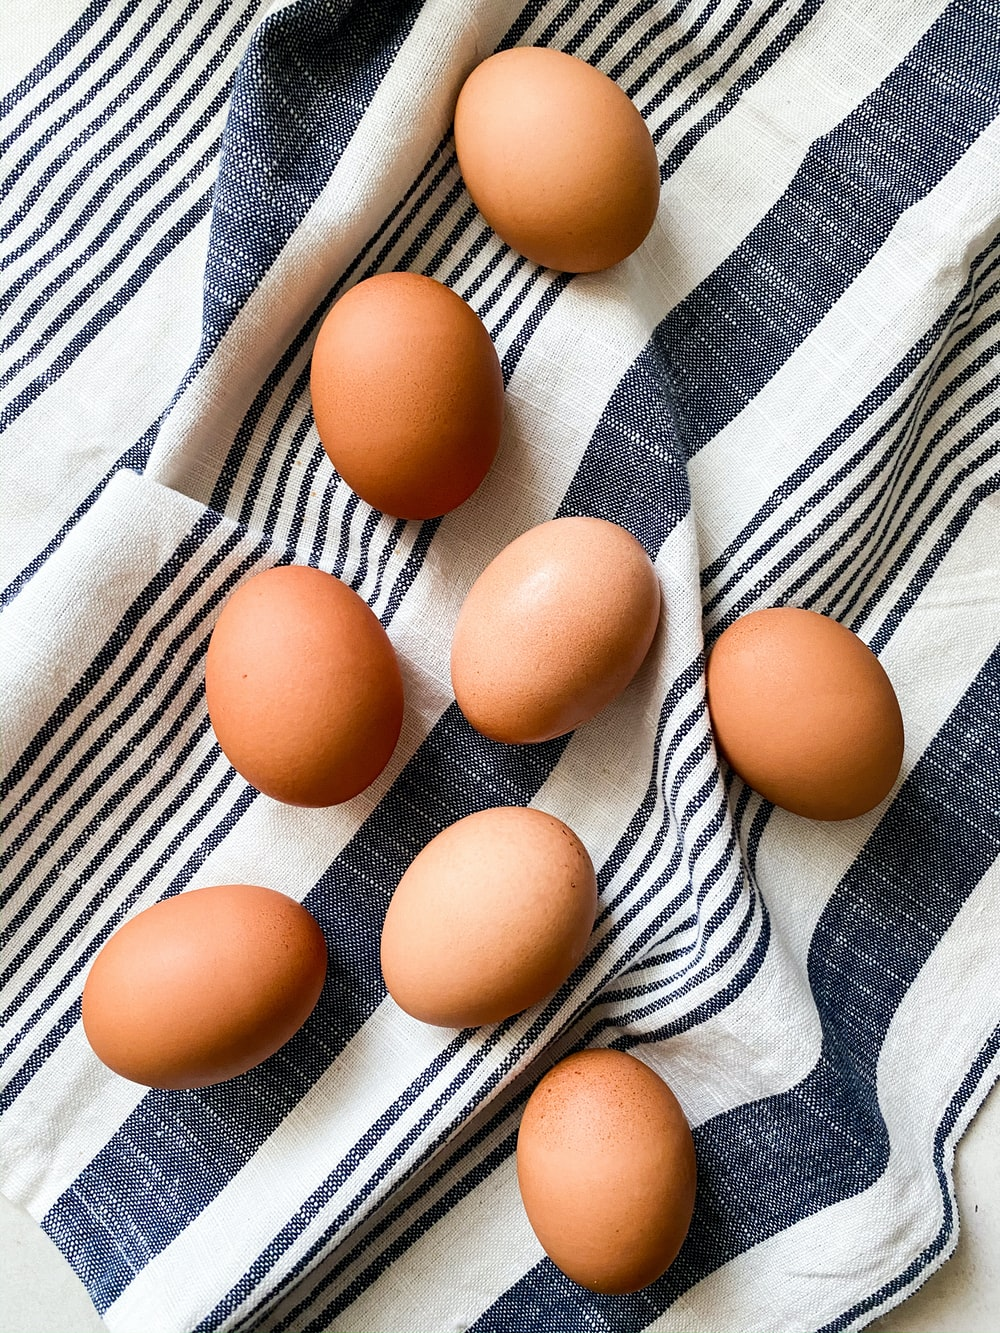 brown egg on white and blue stripe textile